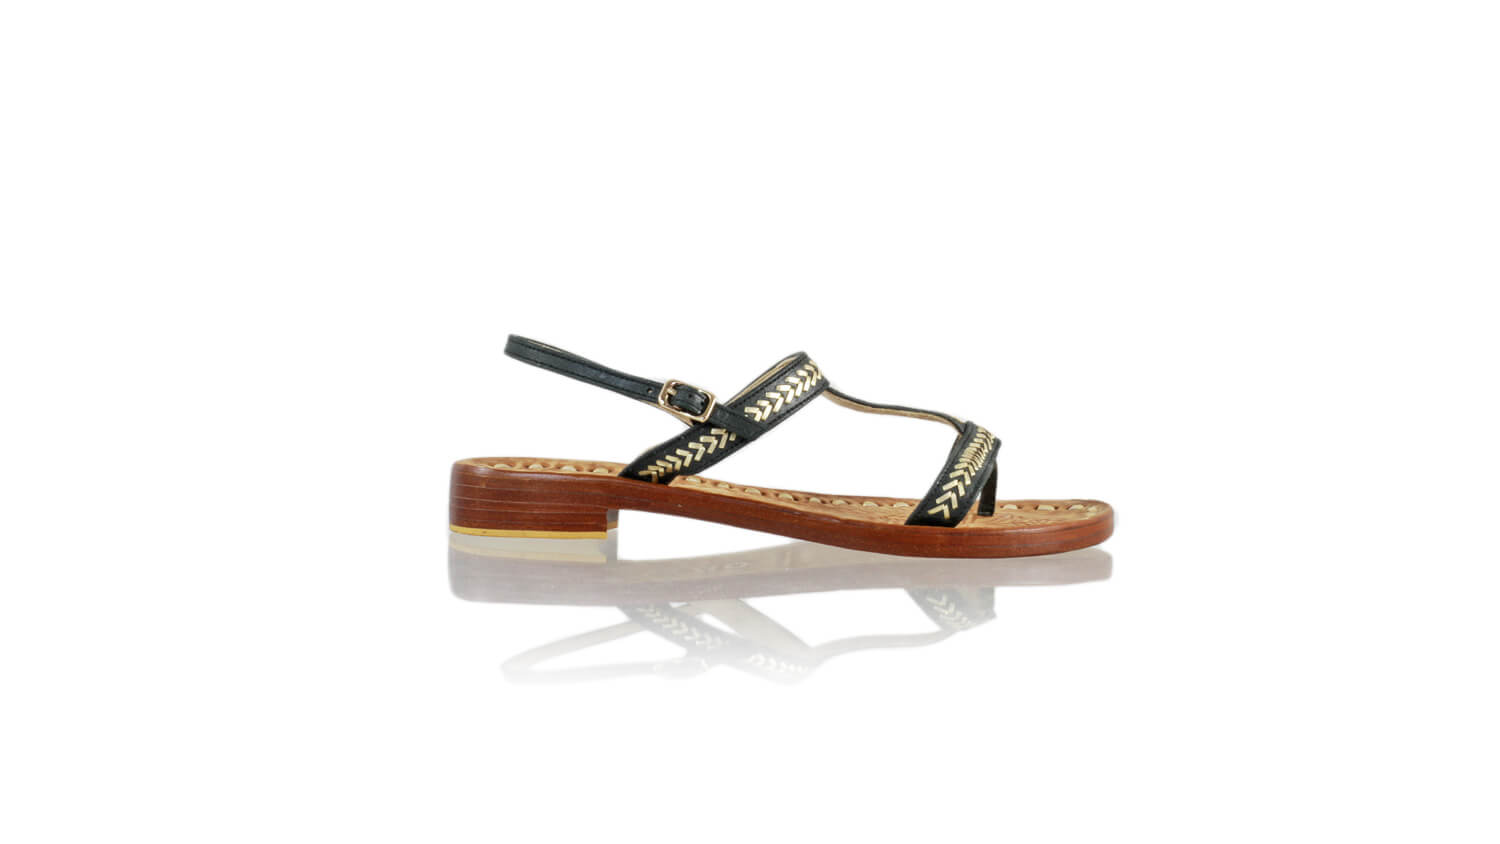 Leather-shoes-Diah 20mm Flat - Black & Gold-sandals flat-NILUH DJELANTIK-NILUH DJELANTIK